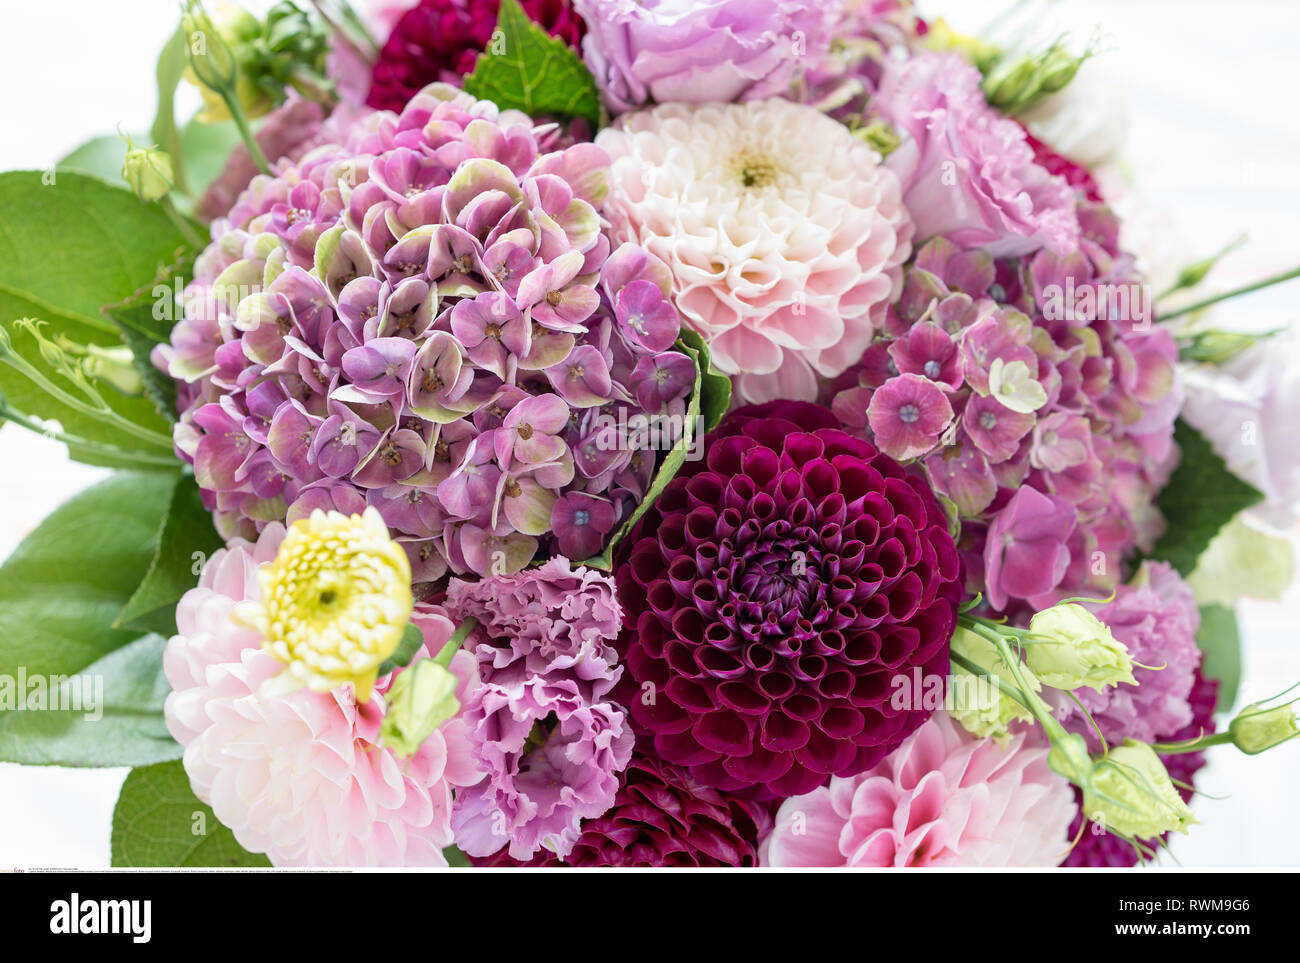 botany, bunch with Dahlen and hydrangea blos, Caution! For Greetingcard-Use / Postcard-Use In German Speaking Countries Certain Restrictions May Apply - Stock Image